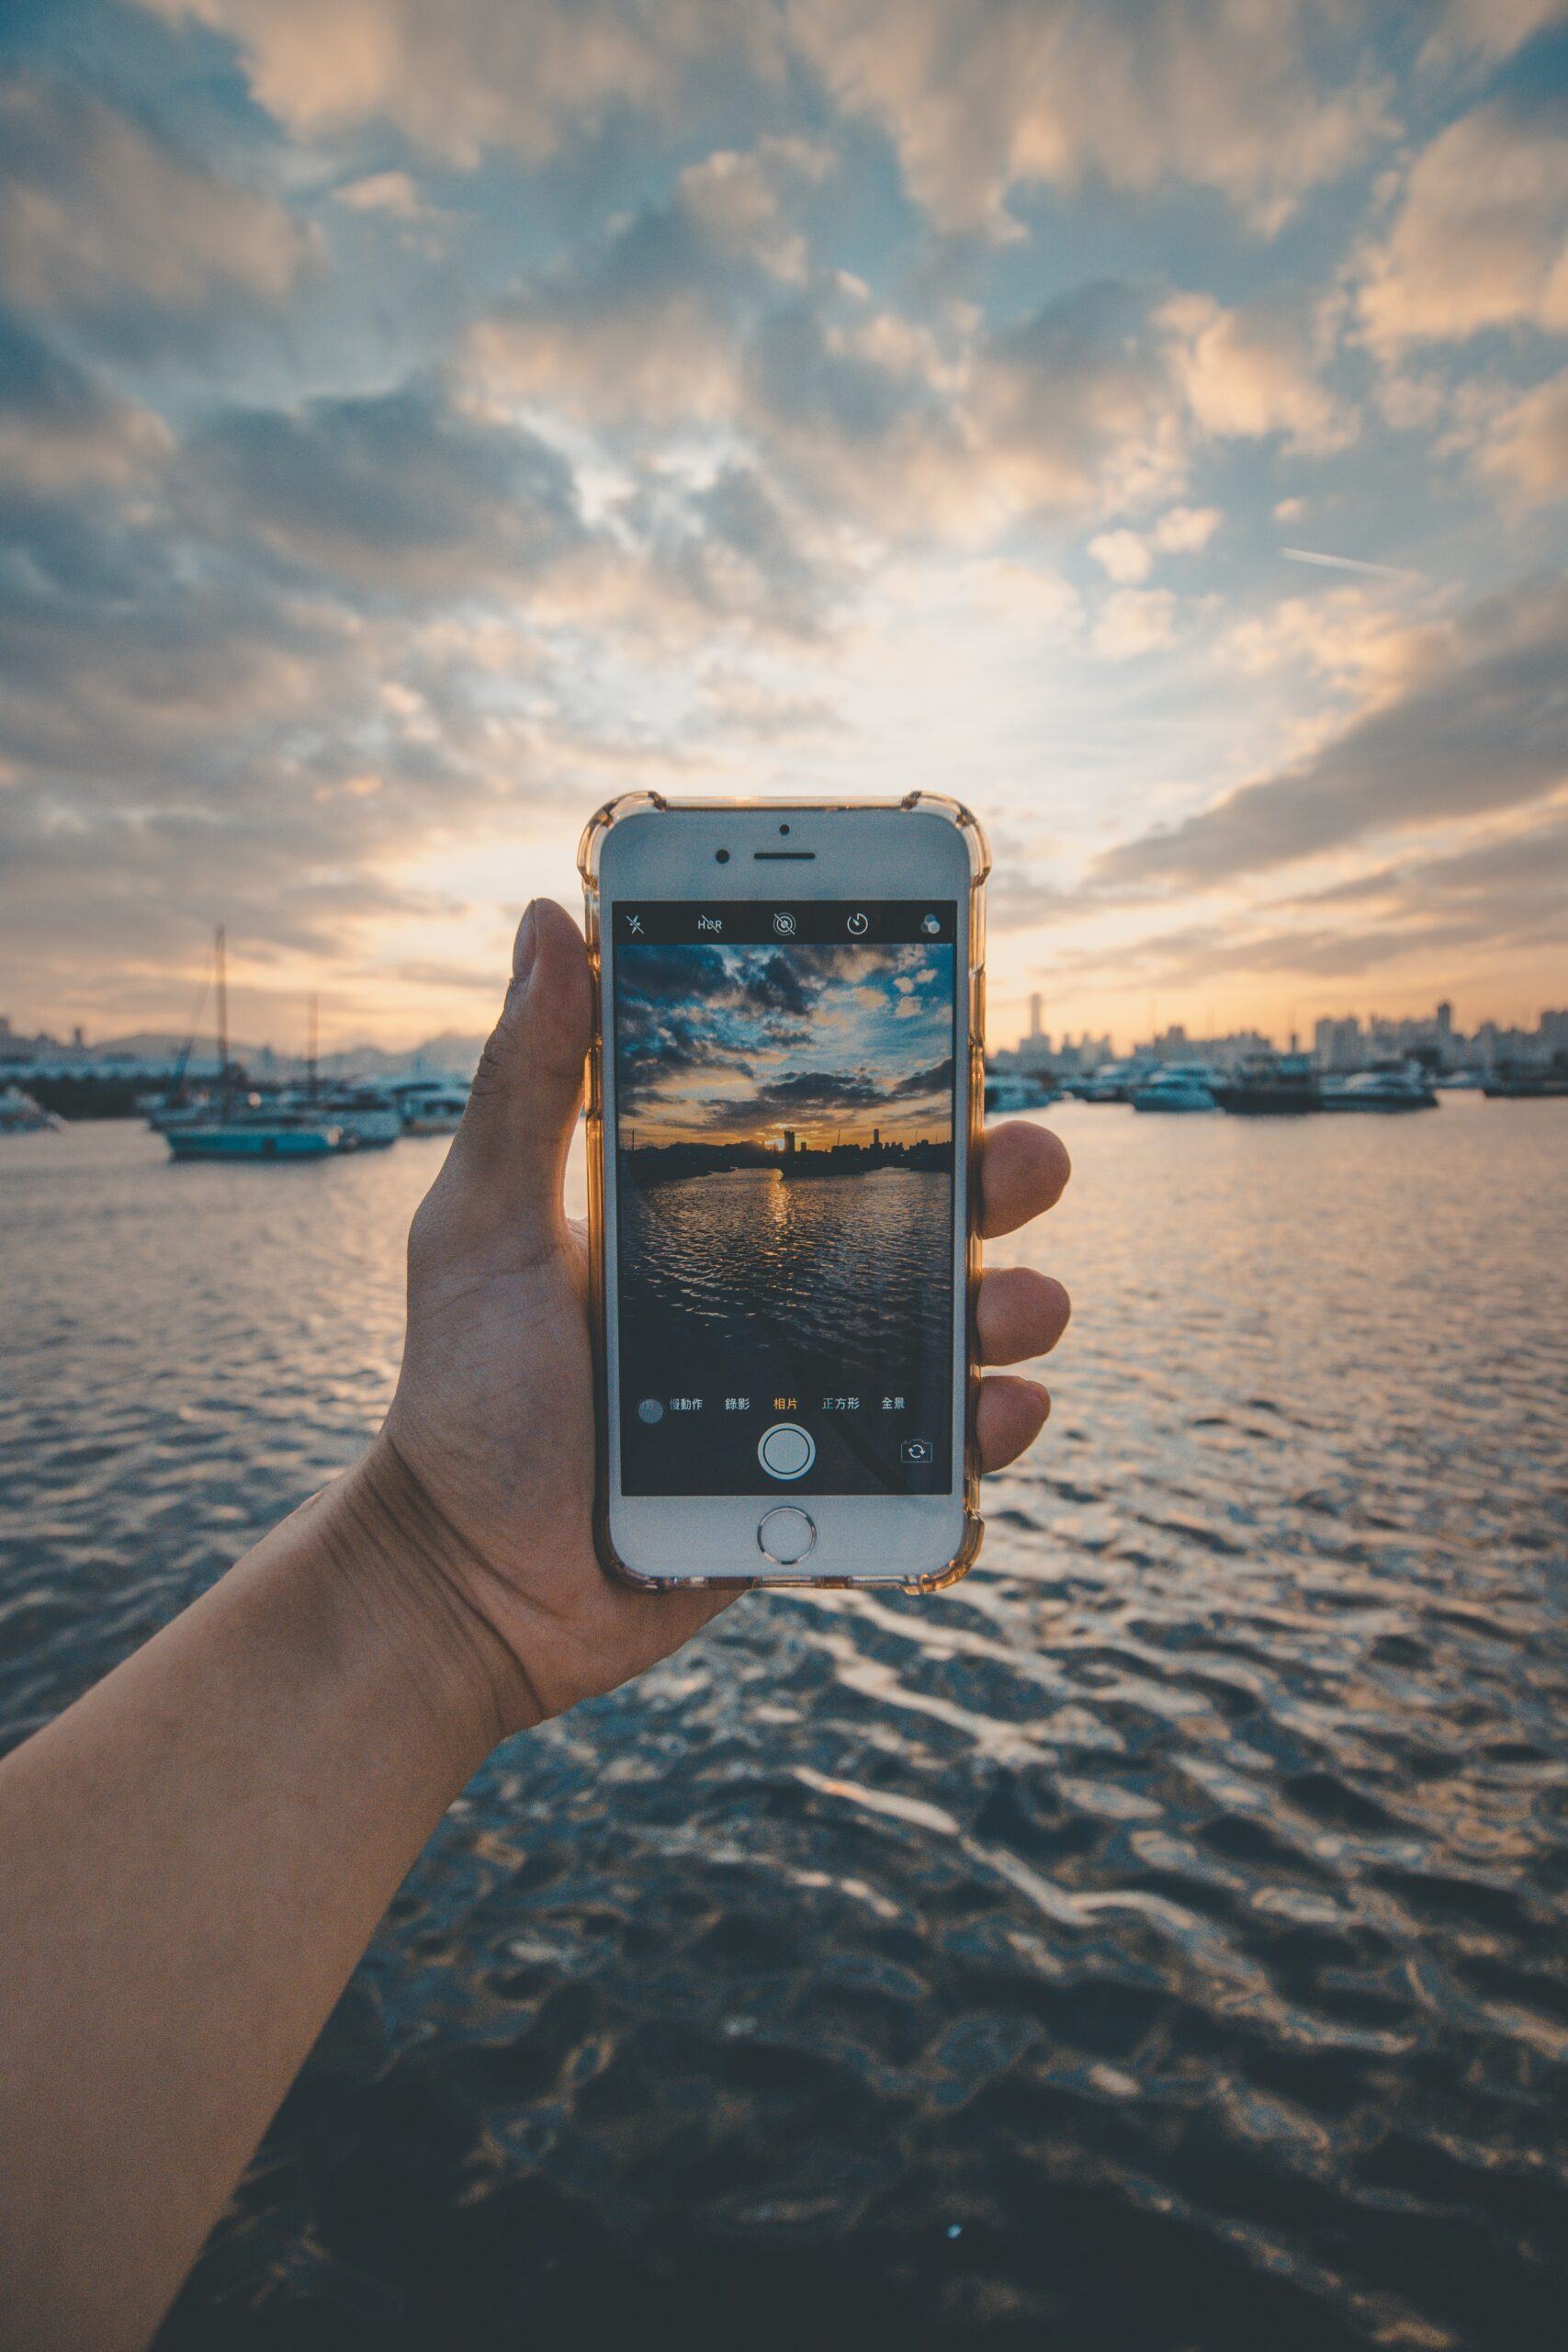 Shooting Video on Your Phone